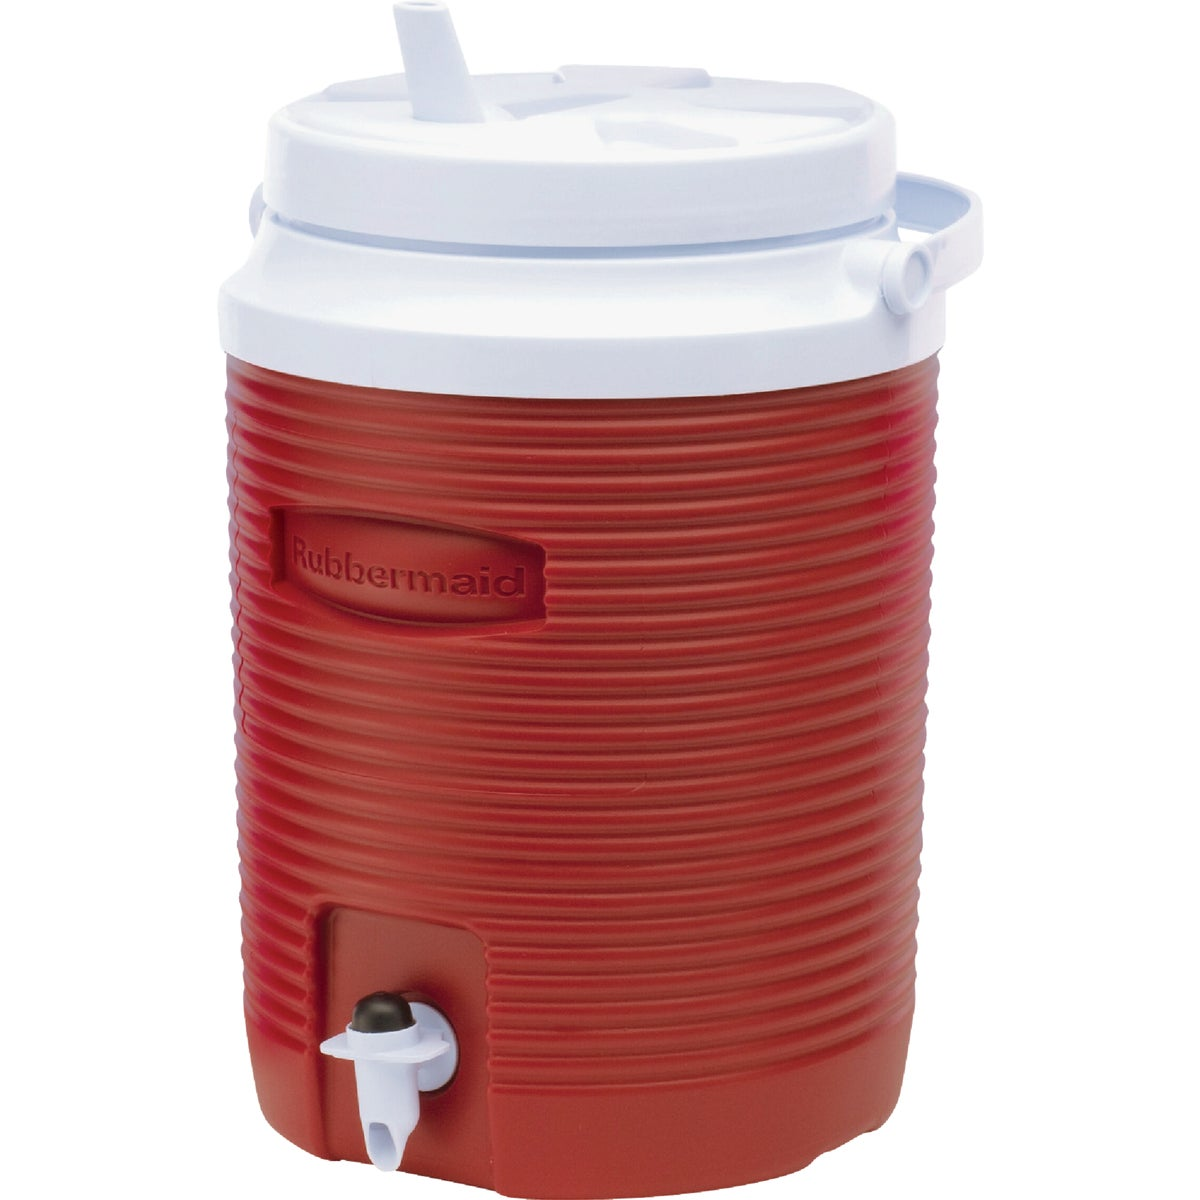 2GAL VICTORY JUG - 153004MODRD by Rubbermaid